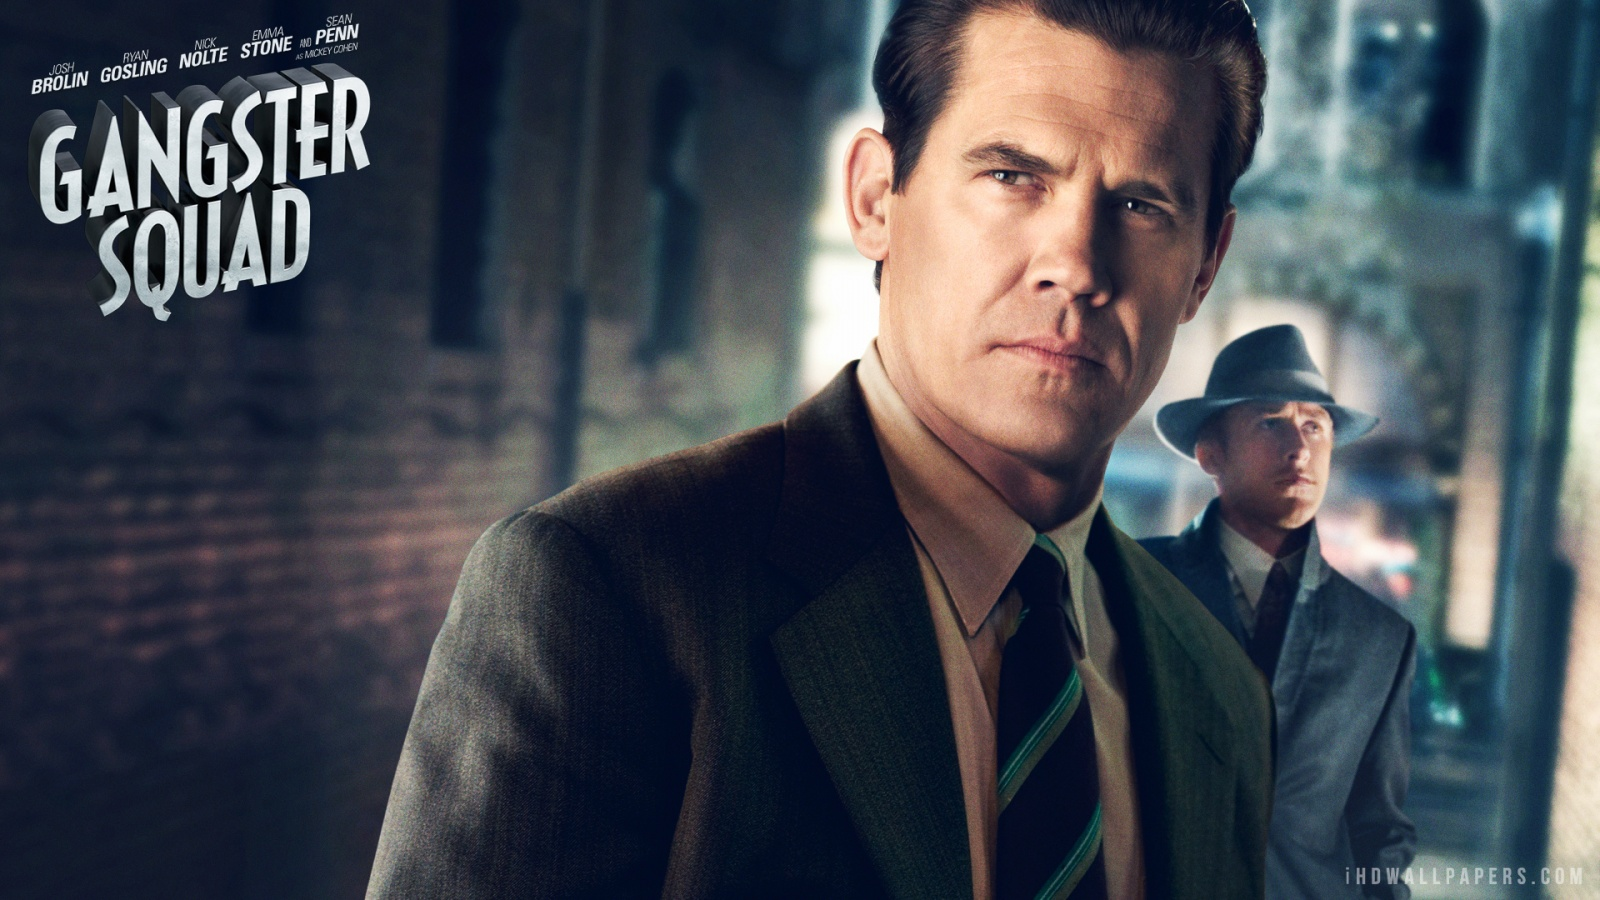 Josh Brolin in Gangster Squad HD Wallpaper   iHD Wallpapers 1600x900